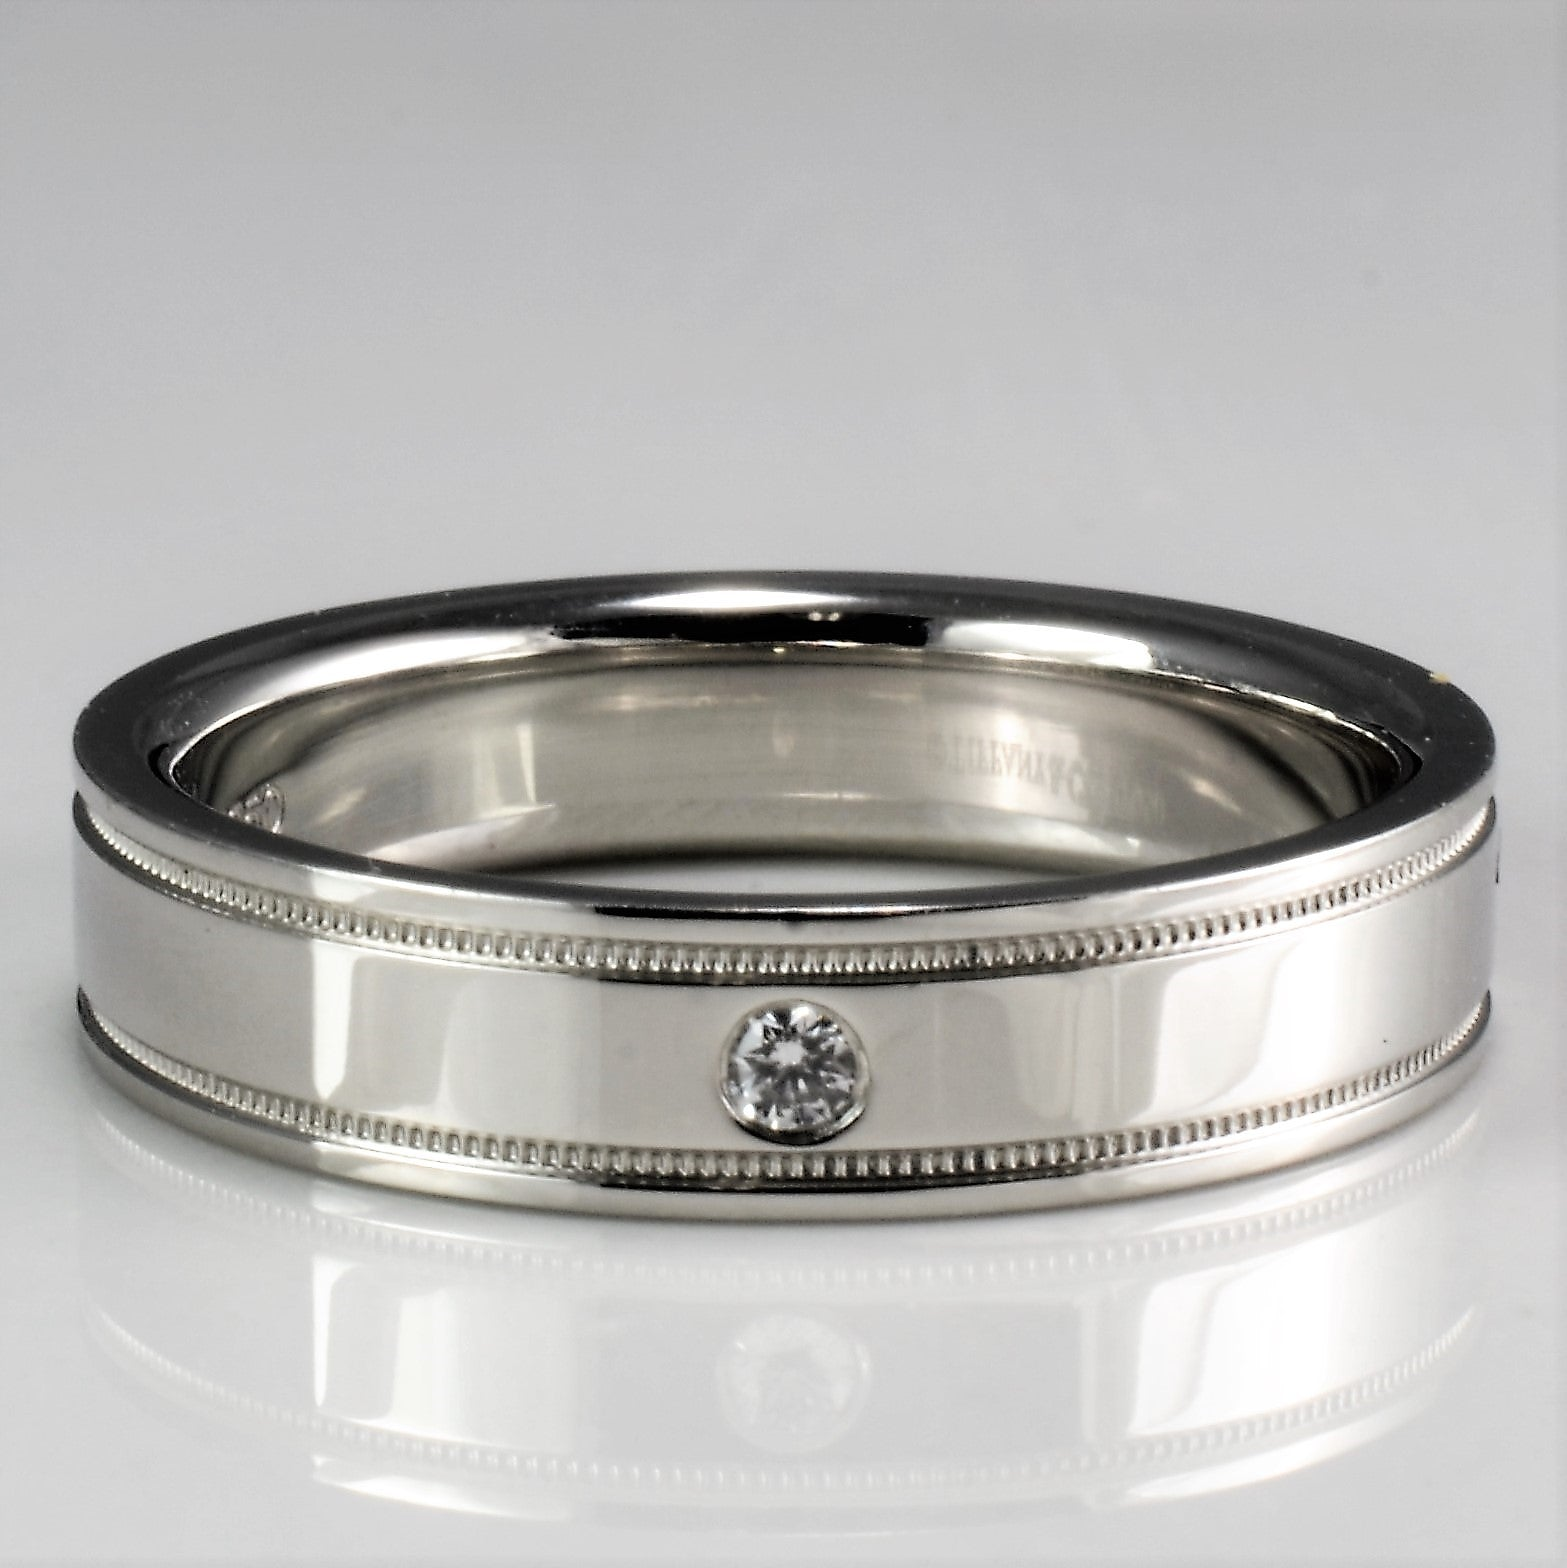 mens l for excellent condition rings ring id bands sale and band platinum j tiffany wedding milgrain in jewelry s co men